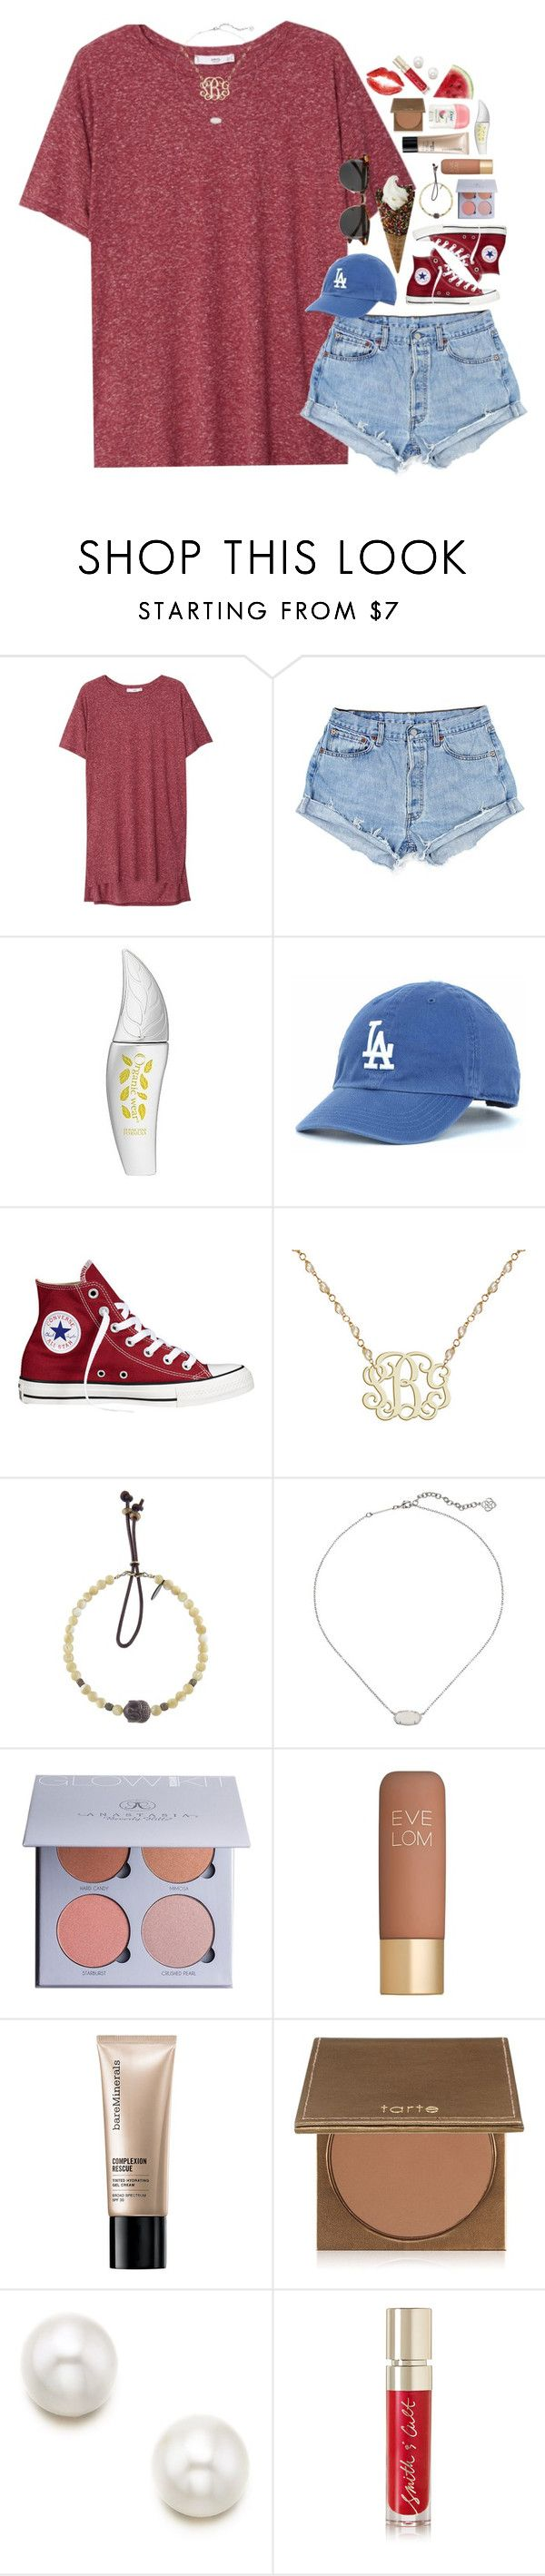 """going to a baseball game tonight!⚾️"" by sdyerrtx ❤ liked on Polyvore featuring MANGO, Physicians Formula, Converse, Catherine Michiels, Kendra Scott, Anastasia Beverly Hills, Eve Lom, Bare Escentuals, tarte and Smith & Cult"